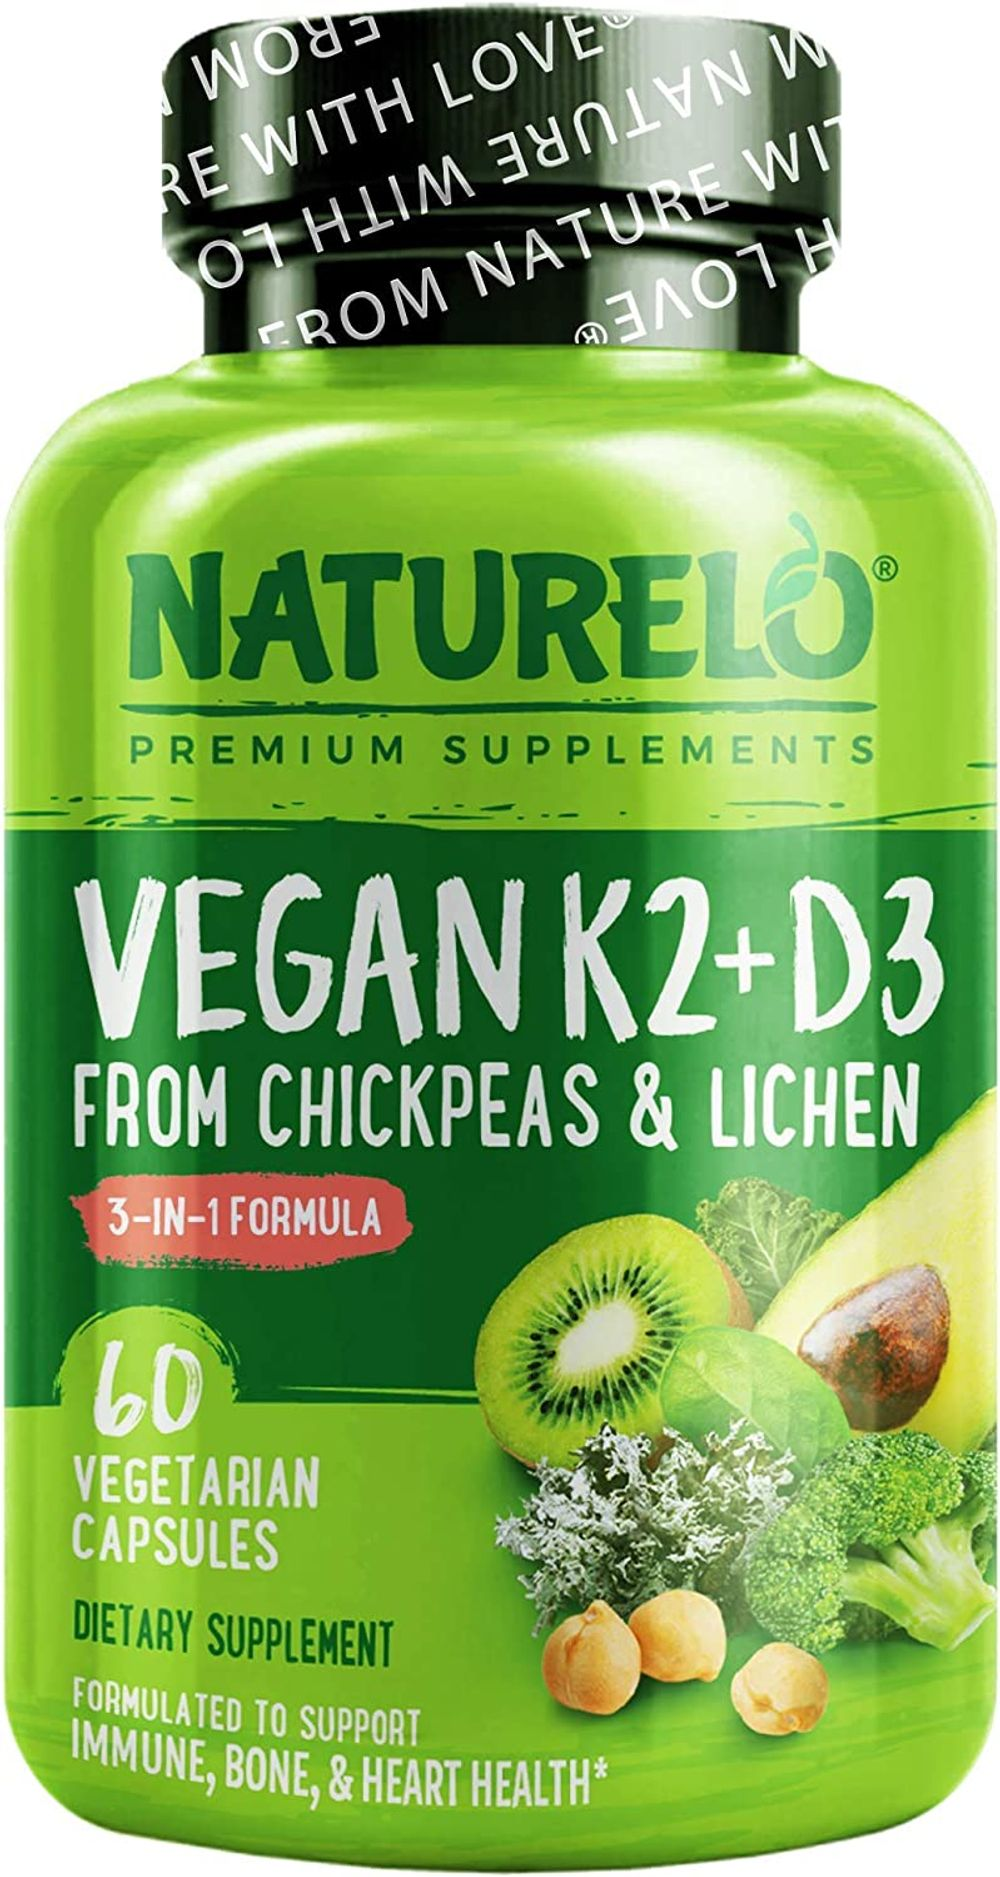 NATURELO Vegan K2+D3 - Plant Based D3 from Lichen - Natural D3 Supplement for Immune System, Bone Support, Joint Health - Whole Food - Vegan - Non-GMO - Gluten Free - 60 Capsules